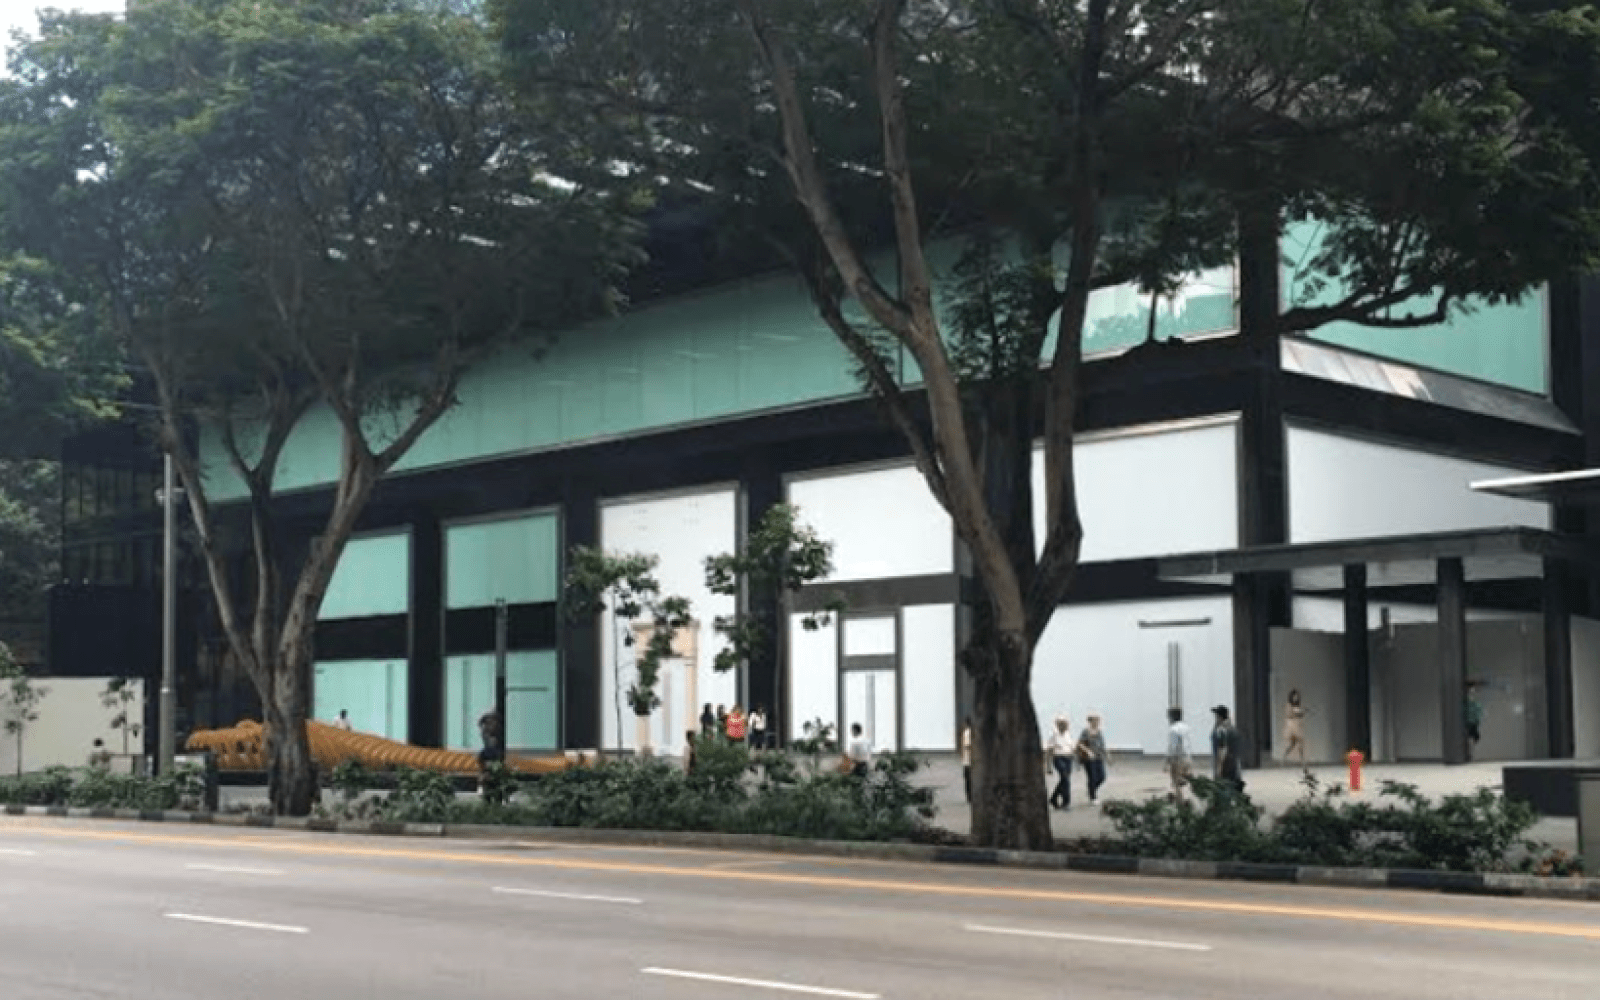 New photos show work underway at rumored location of Apple's first retail store in Singapore